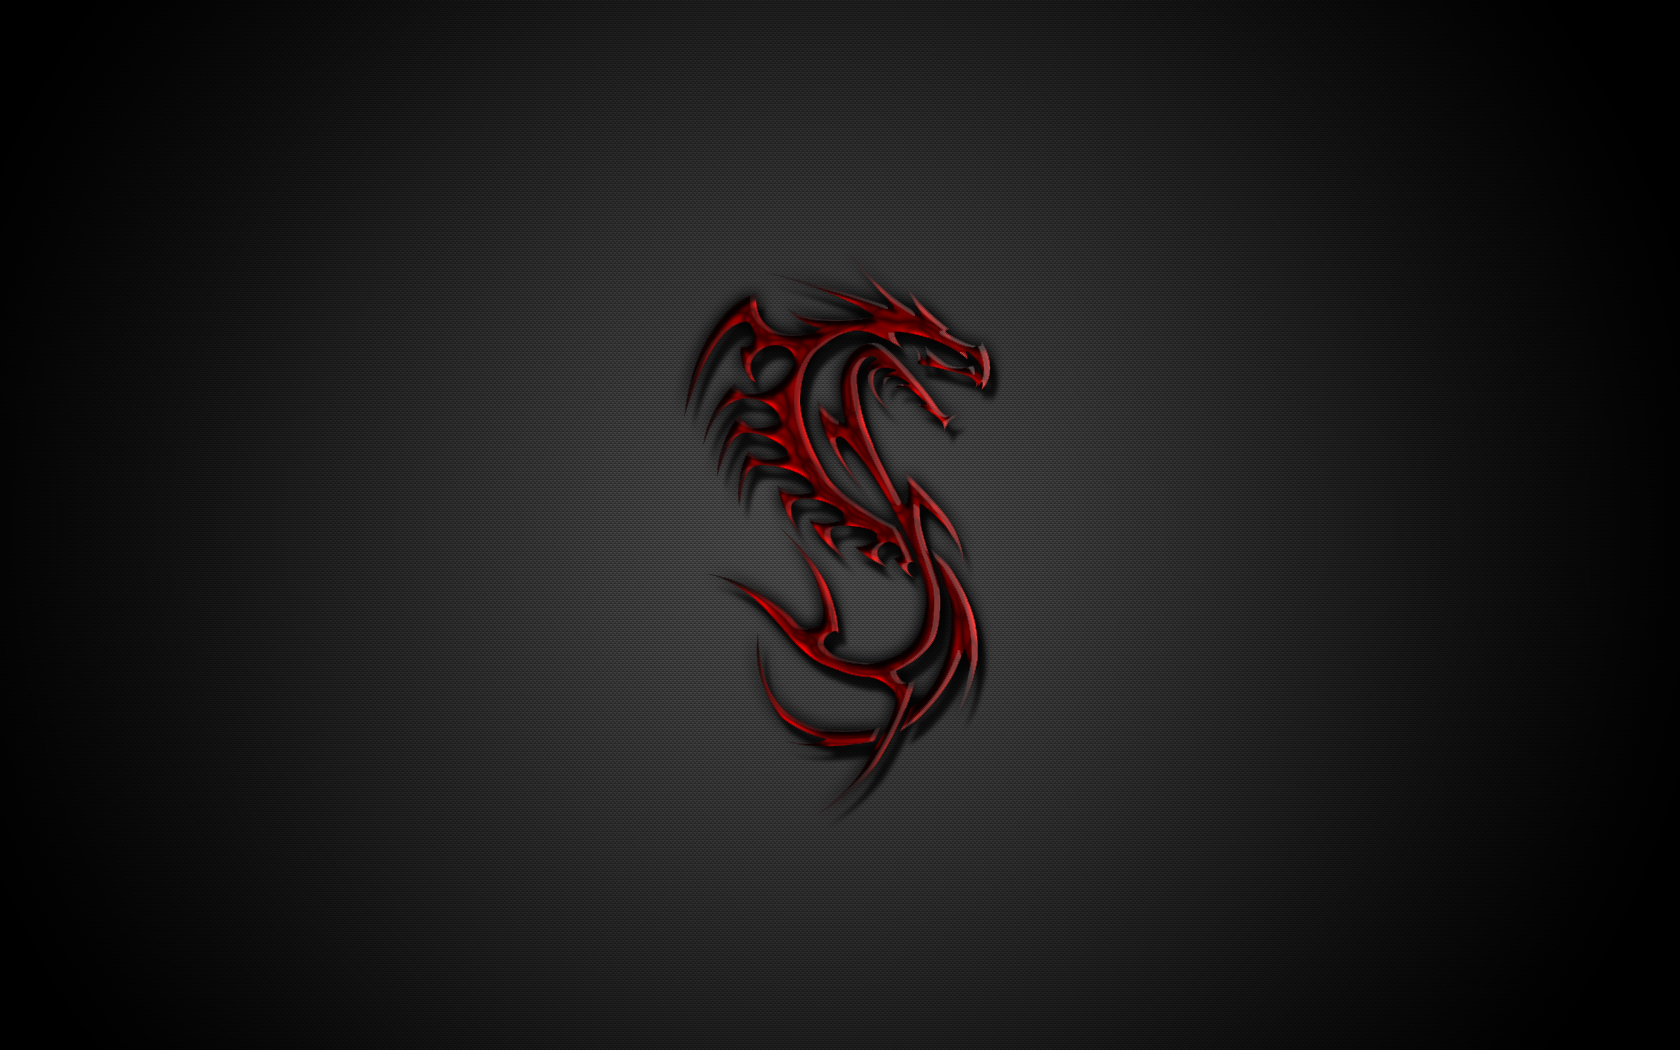 Free Download Red Dragon Wallpapers And Images Wallpapers Pictures Photos 1680x1050 For Your Desktop Mobile Tablet Explore 76 Red Dragon Wallpapers Dragon Wallpaper Desktop Dragon Hd Wallpaper Wargame Red Dragon Wallpaper